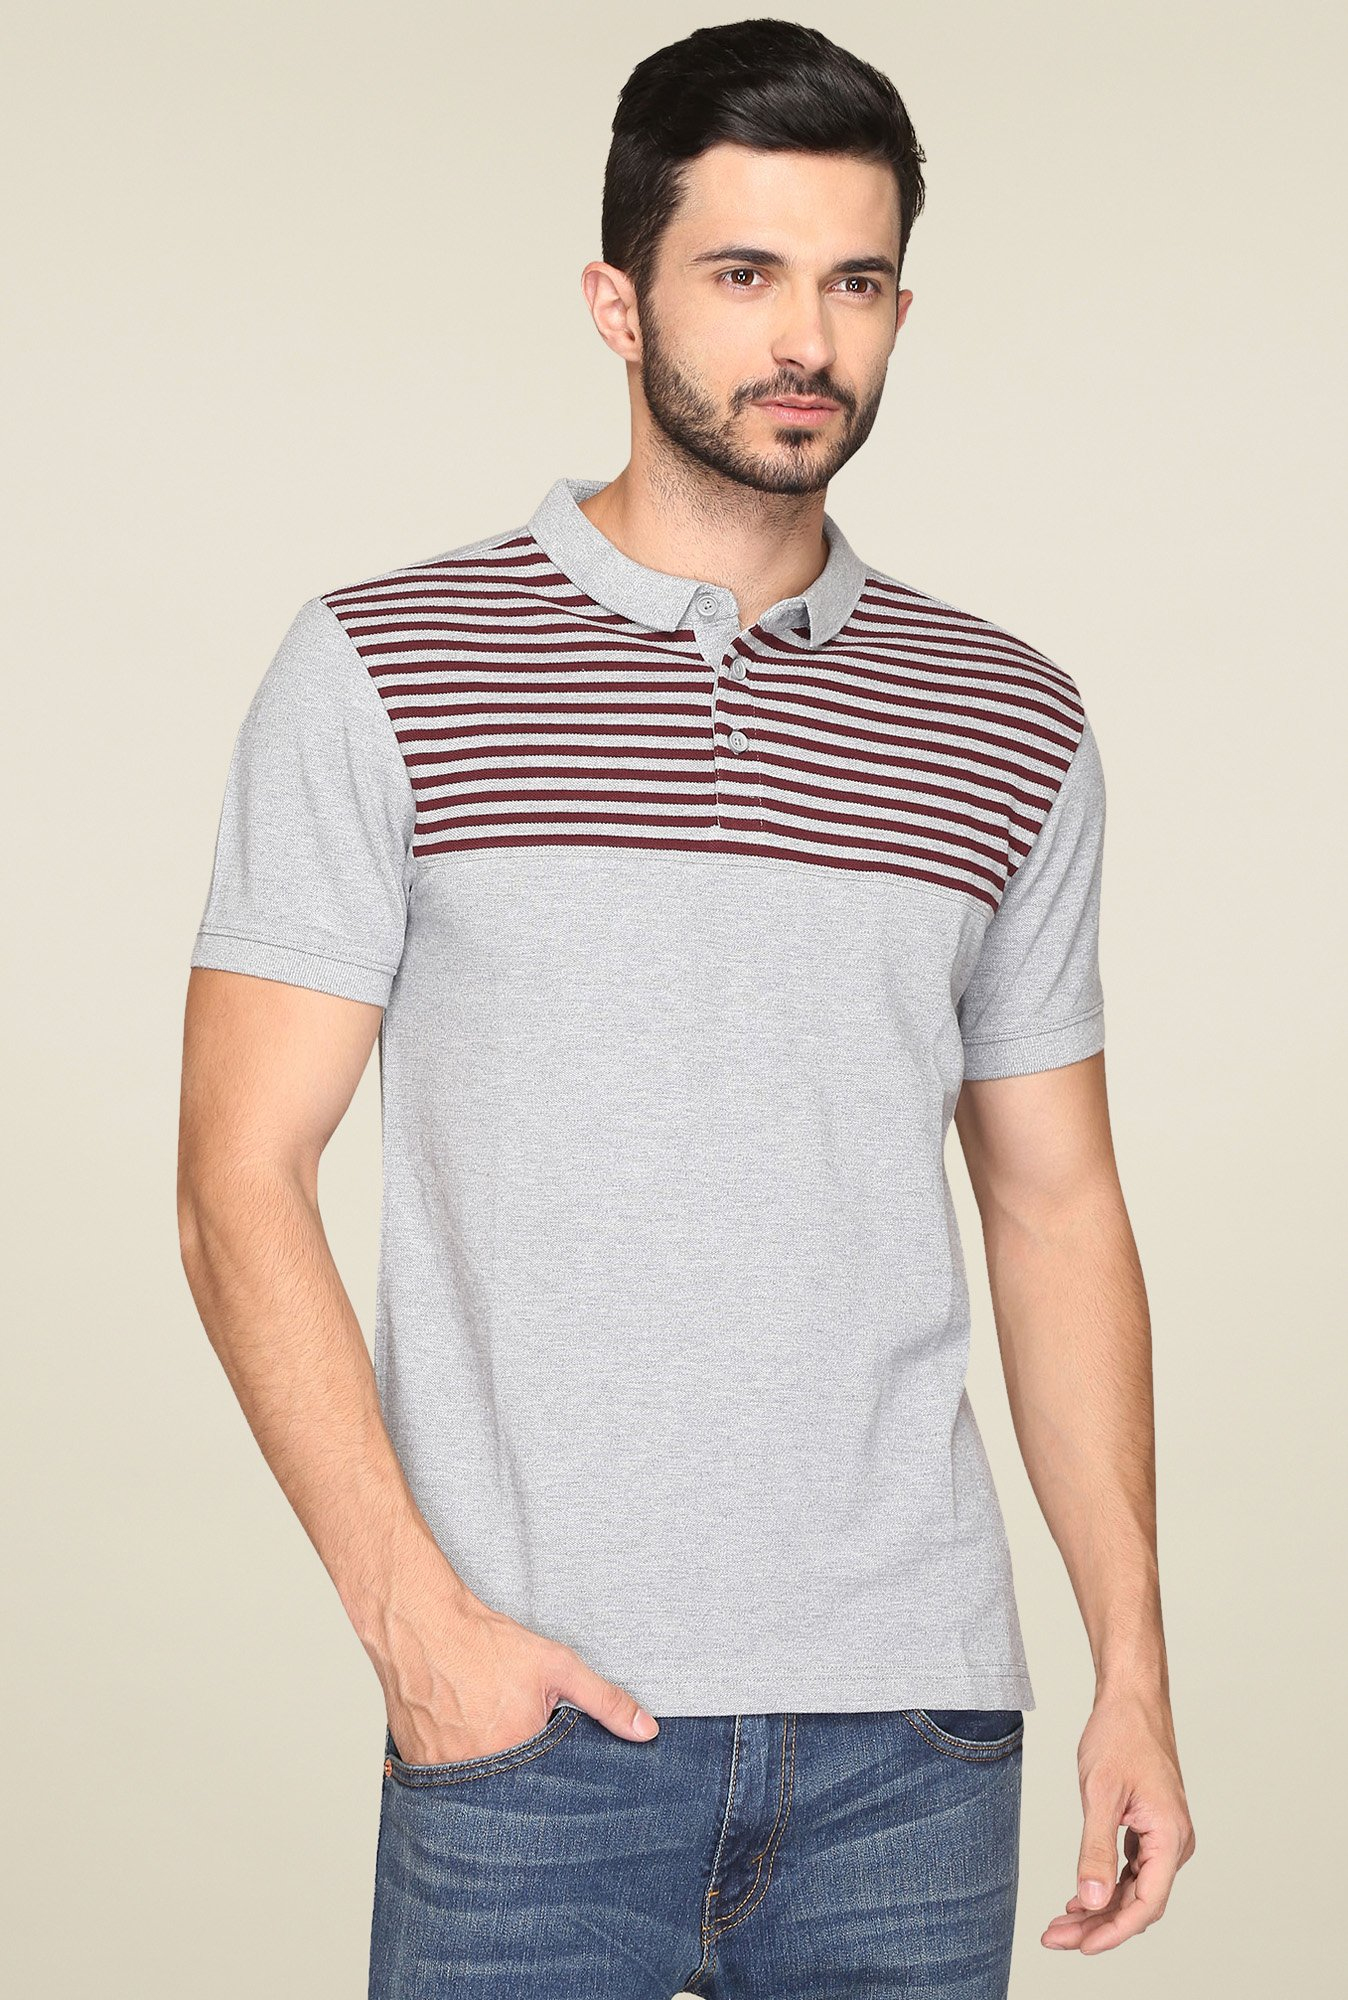 Levi's Light Grey & Maroon Polo T-Shirt